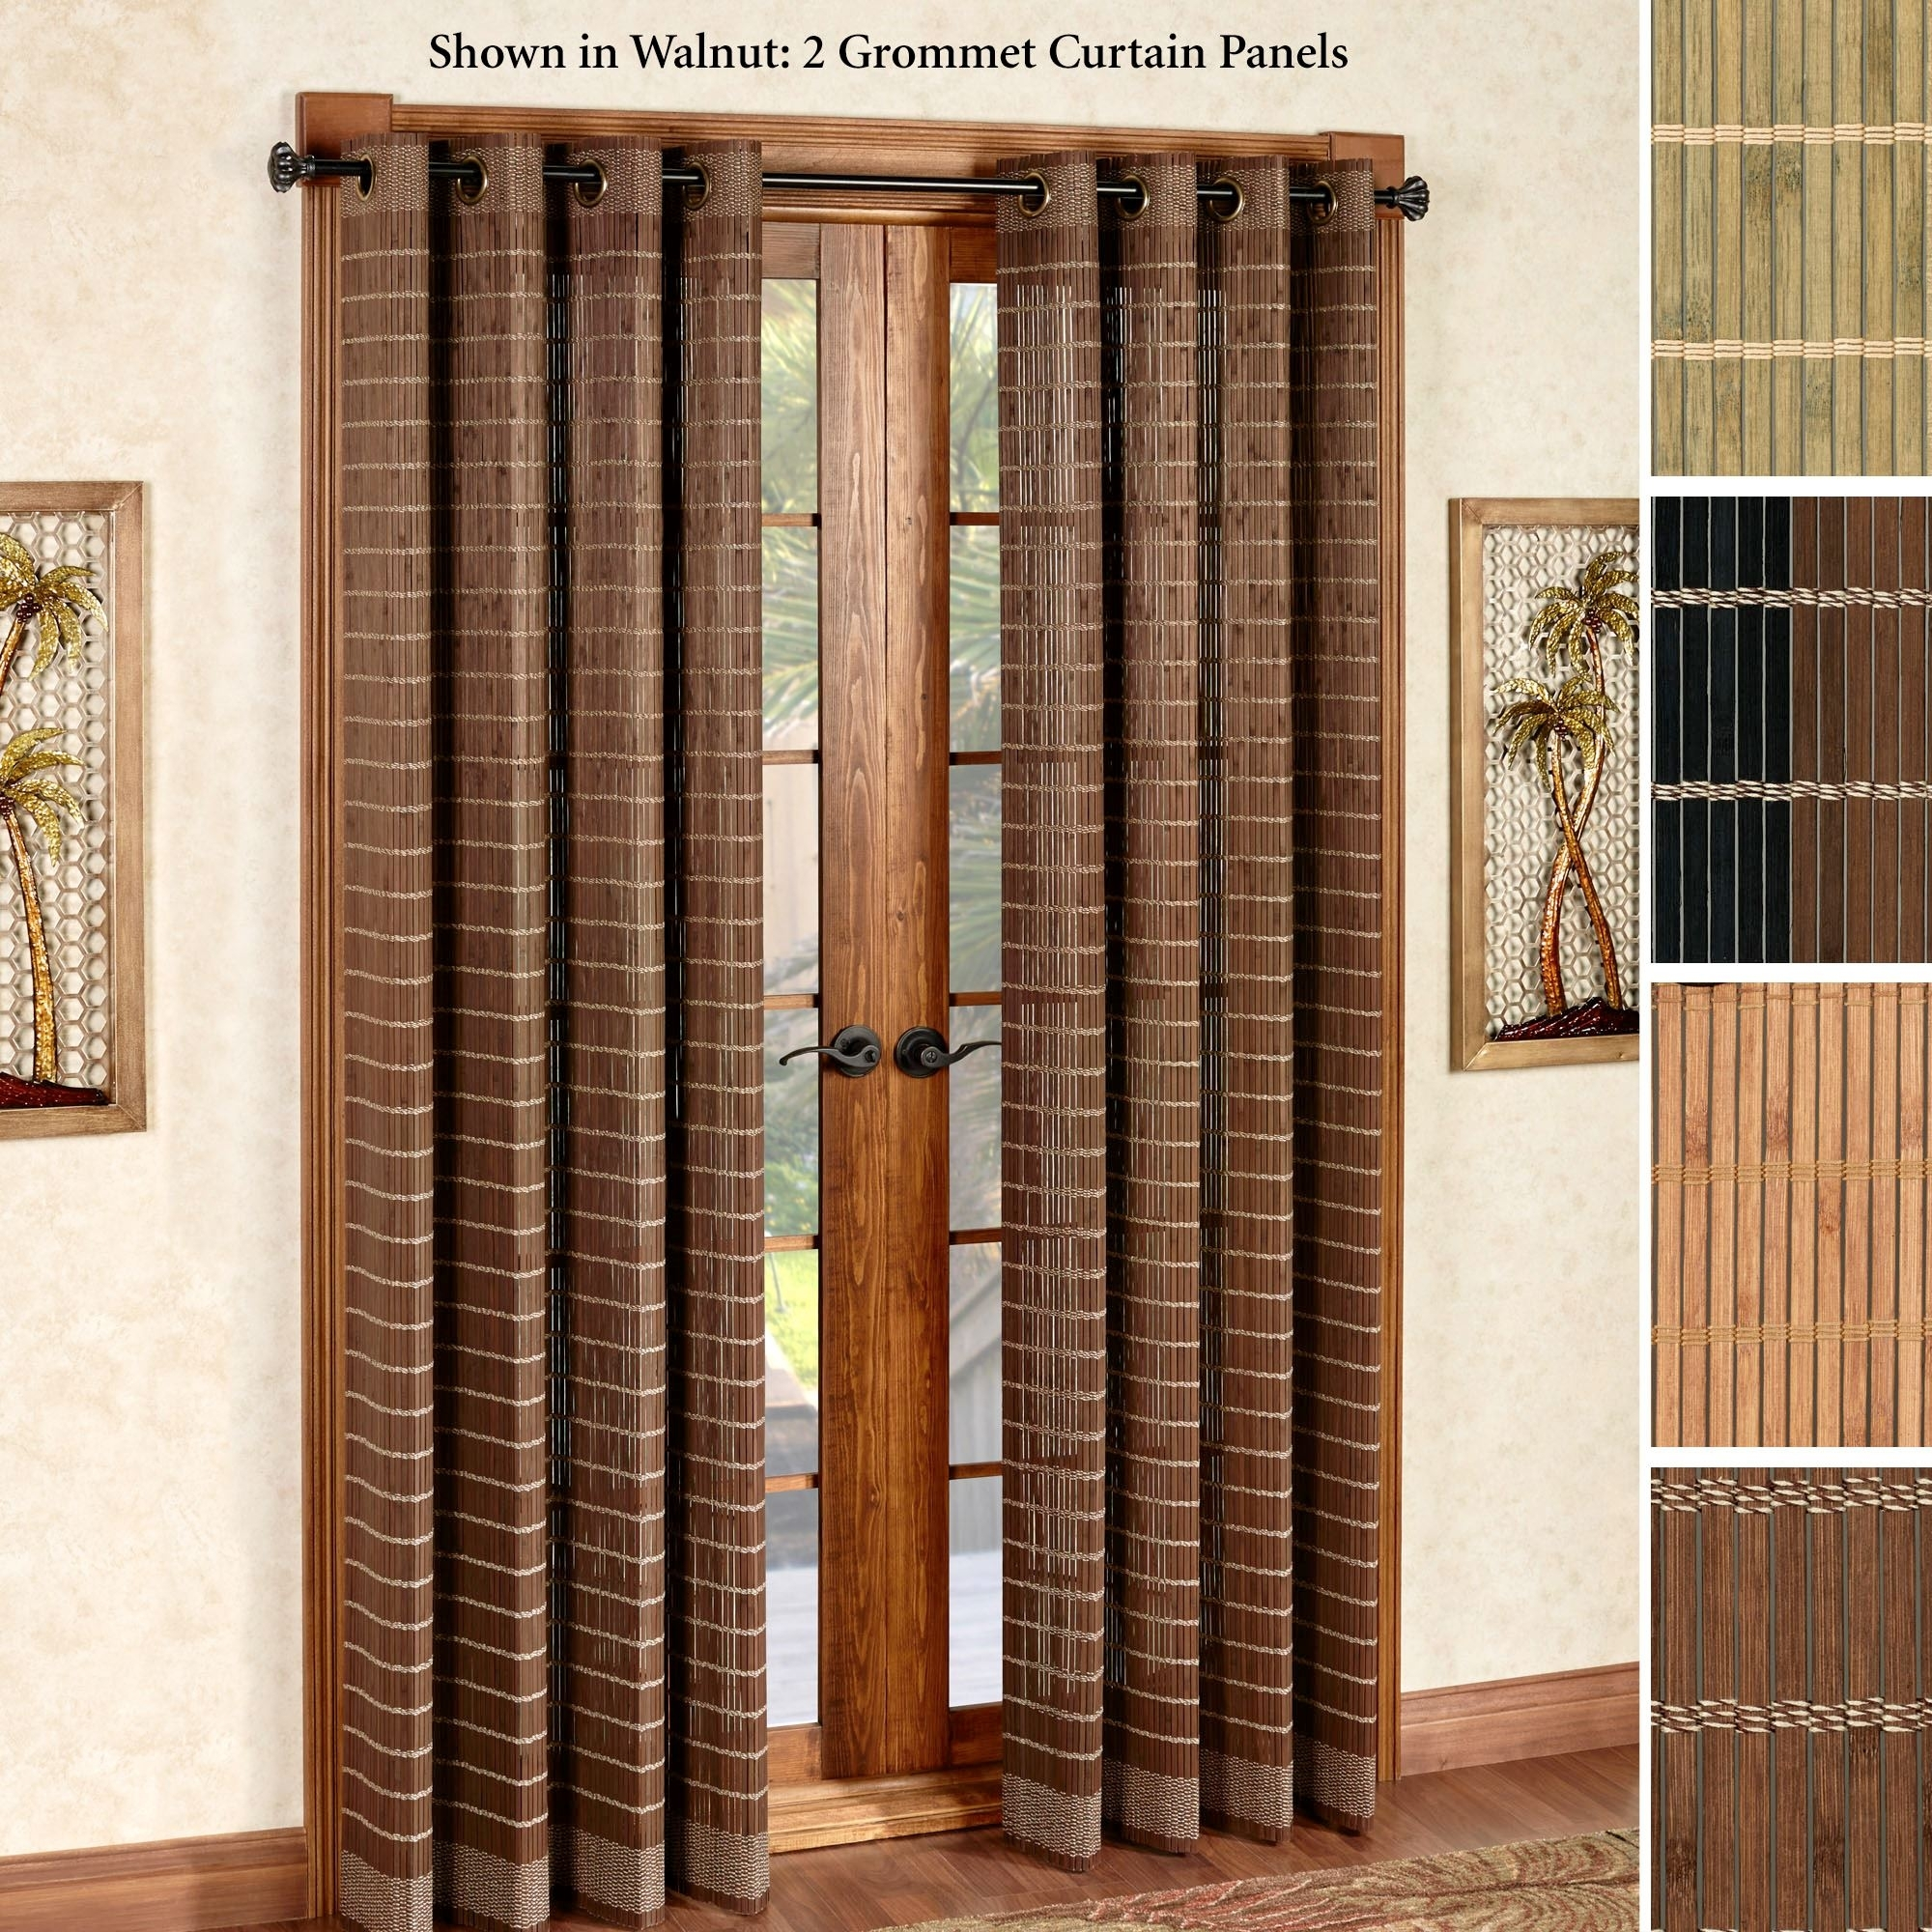 patio door curtains also french door curtains also patio drapes also drapes for sliding doors